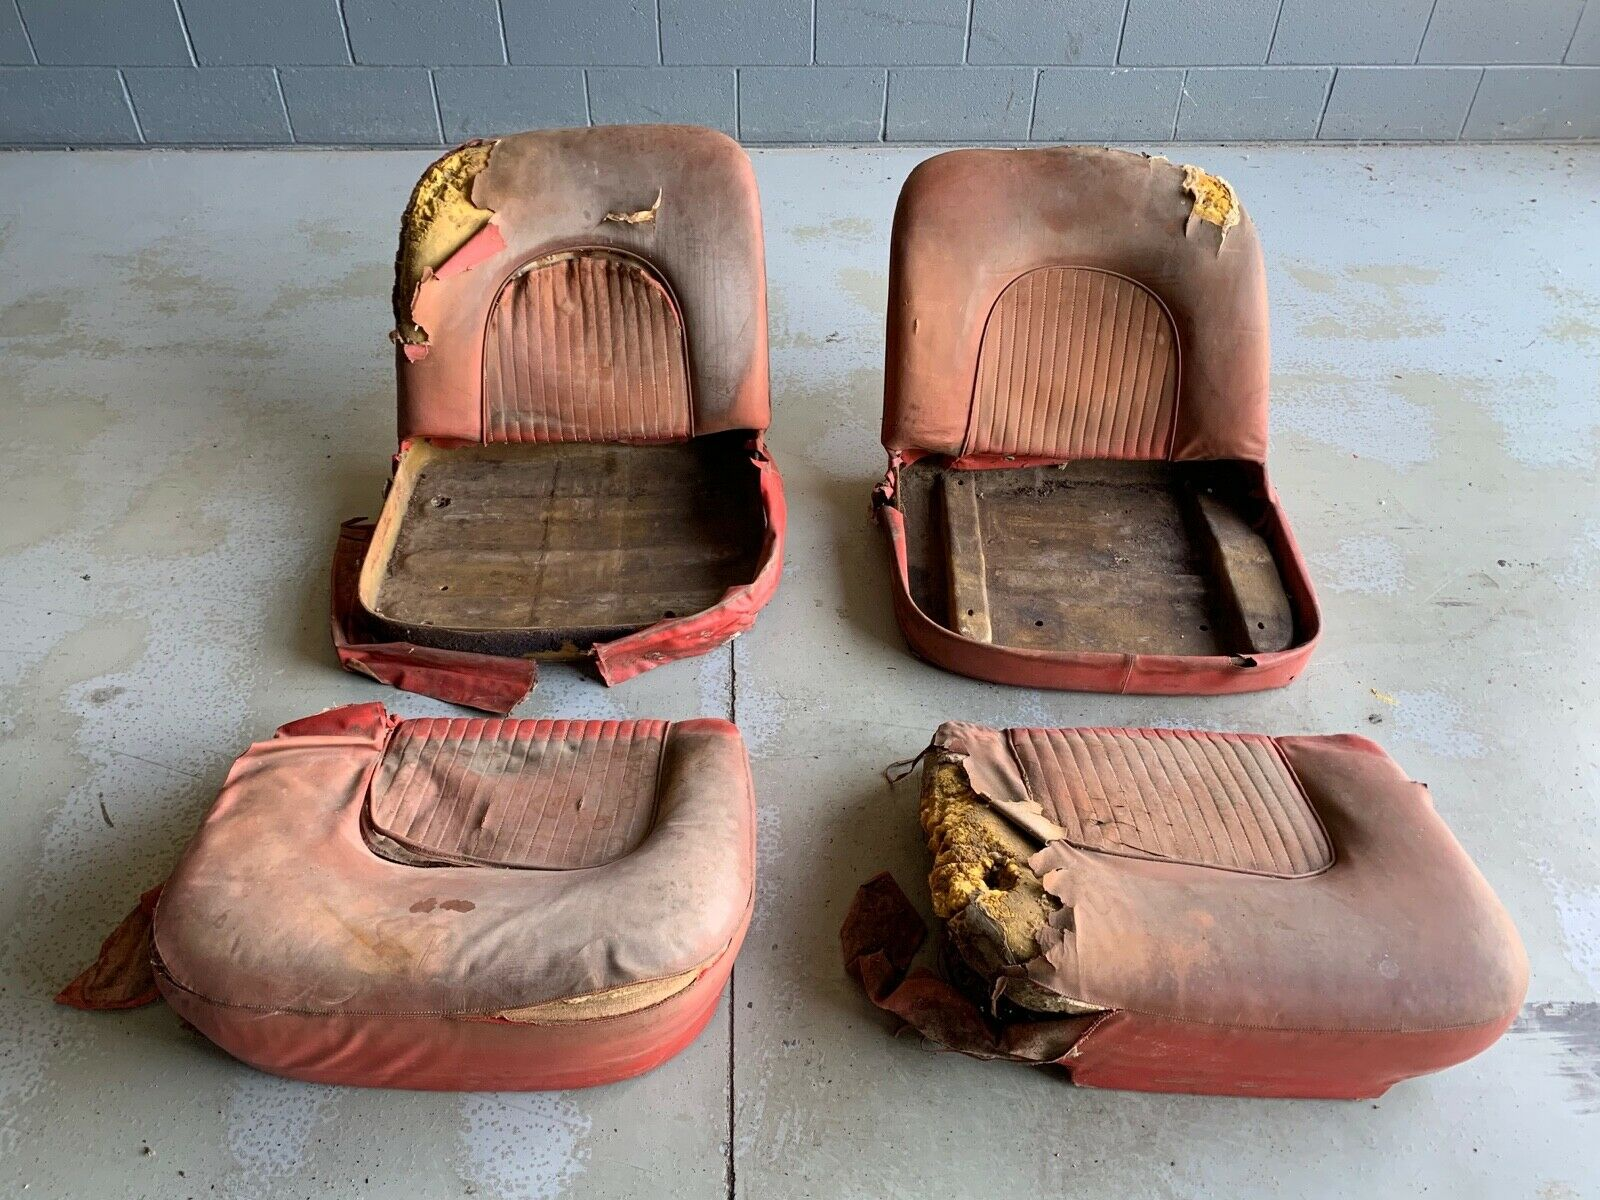 Seats Of Power: These Are The Actual Seats From One Of The Original Pre-Production Corvette Show Cars